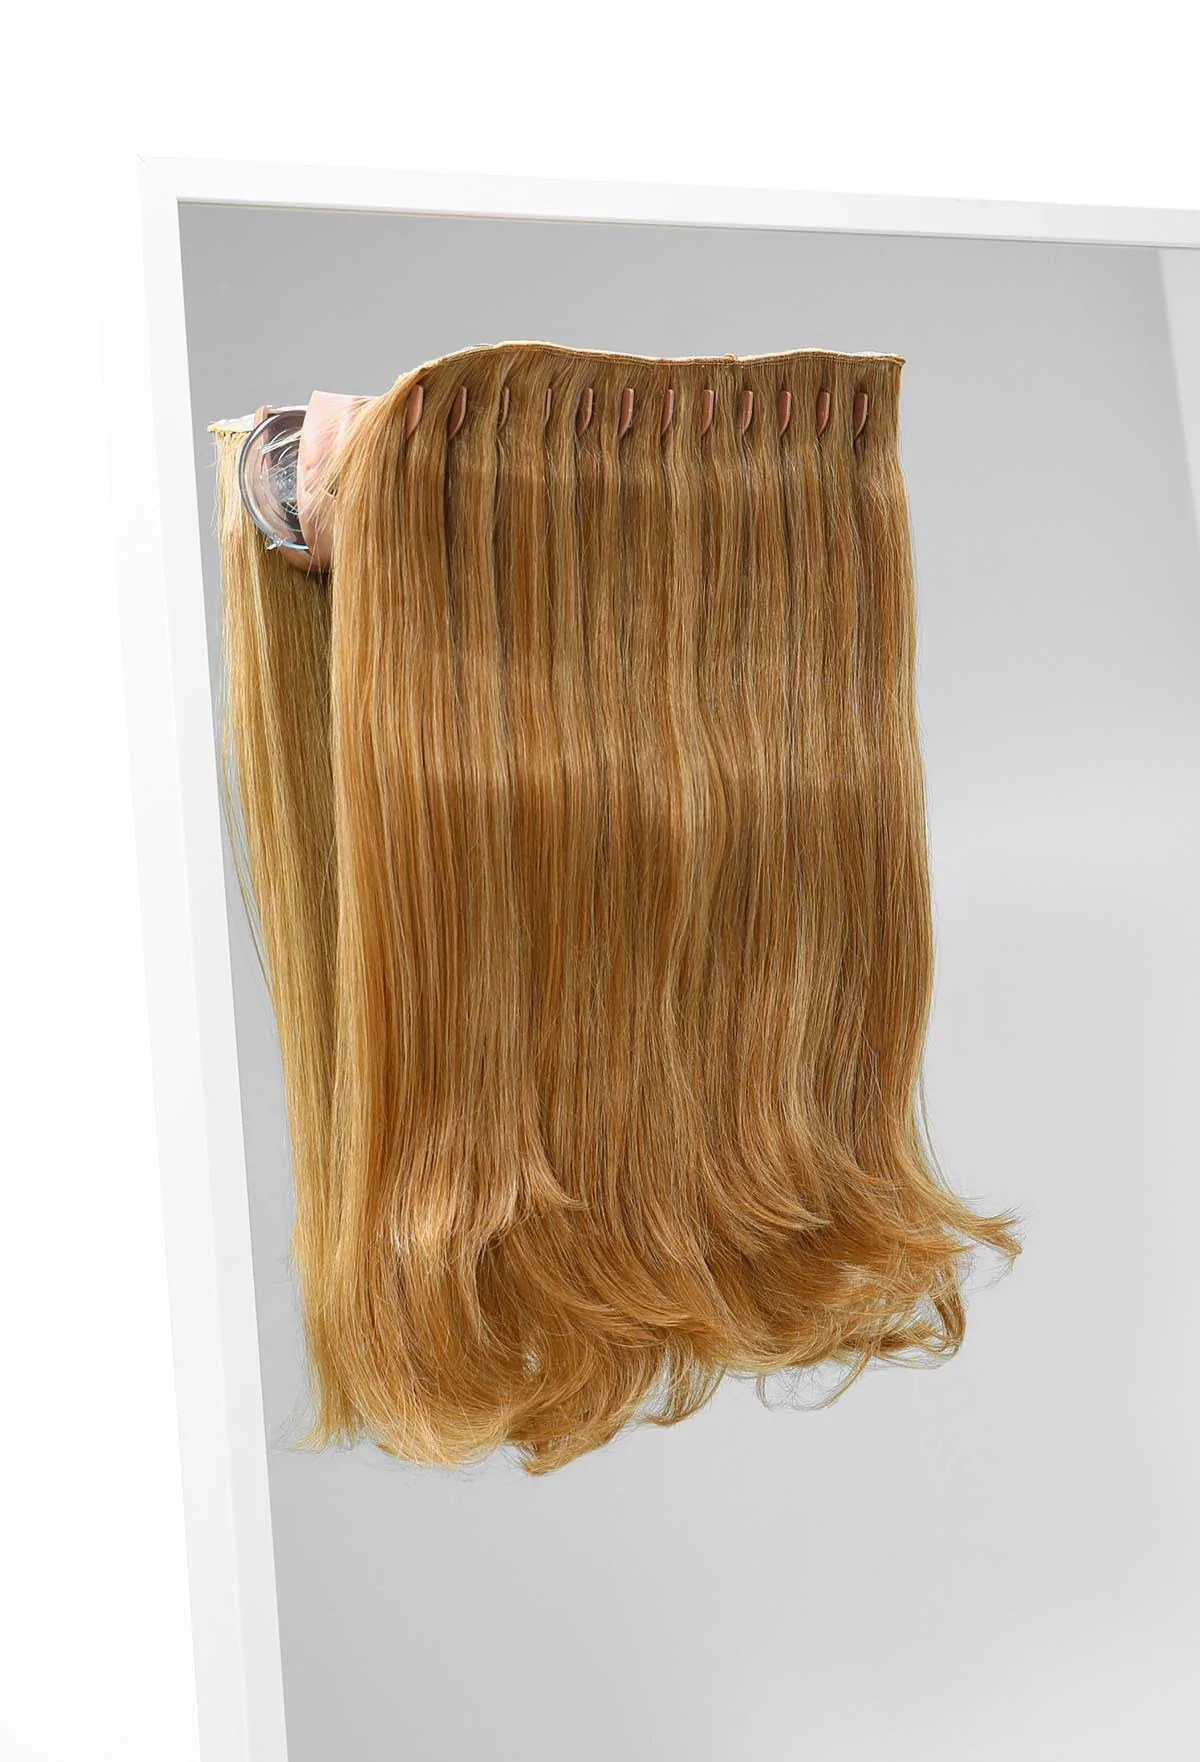 easiweft rose gold hair extensions